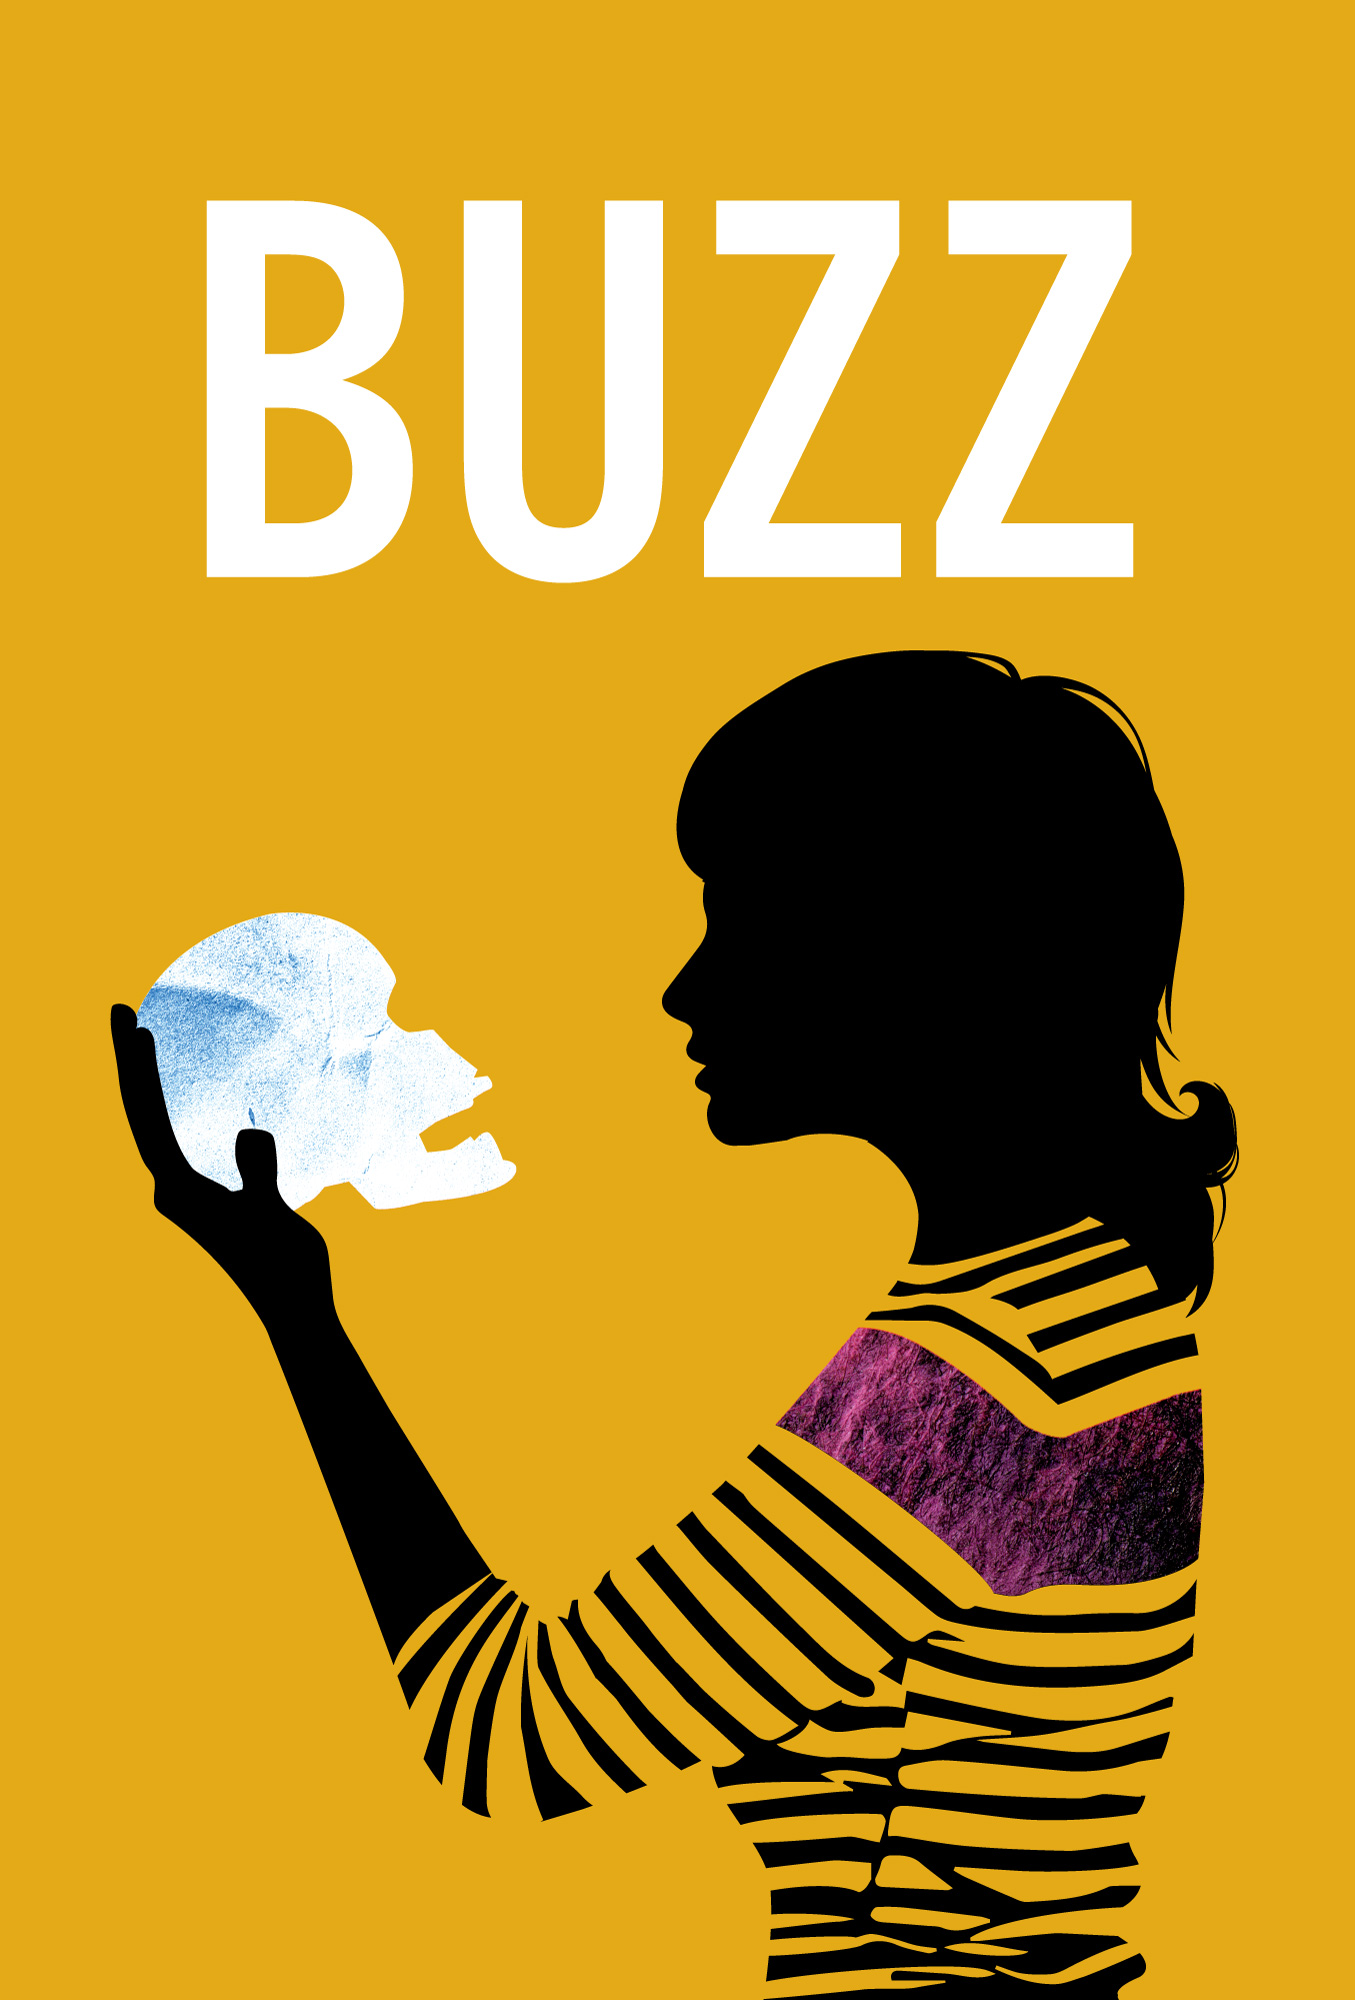 Announcing The Cast Of BUZZ, A New Work By Susan Ferrara